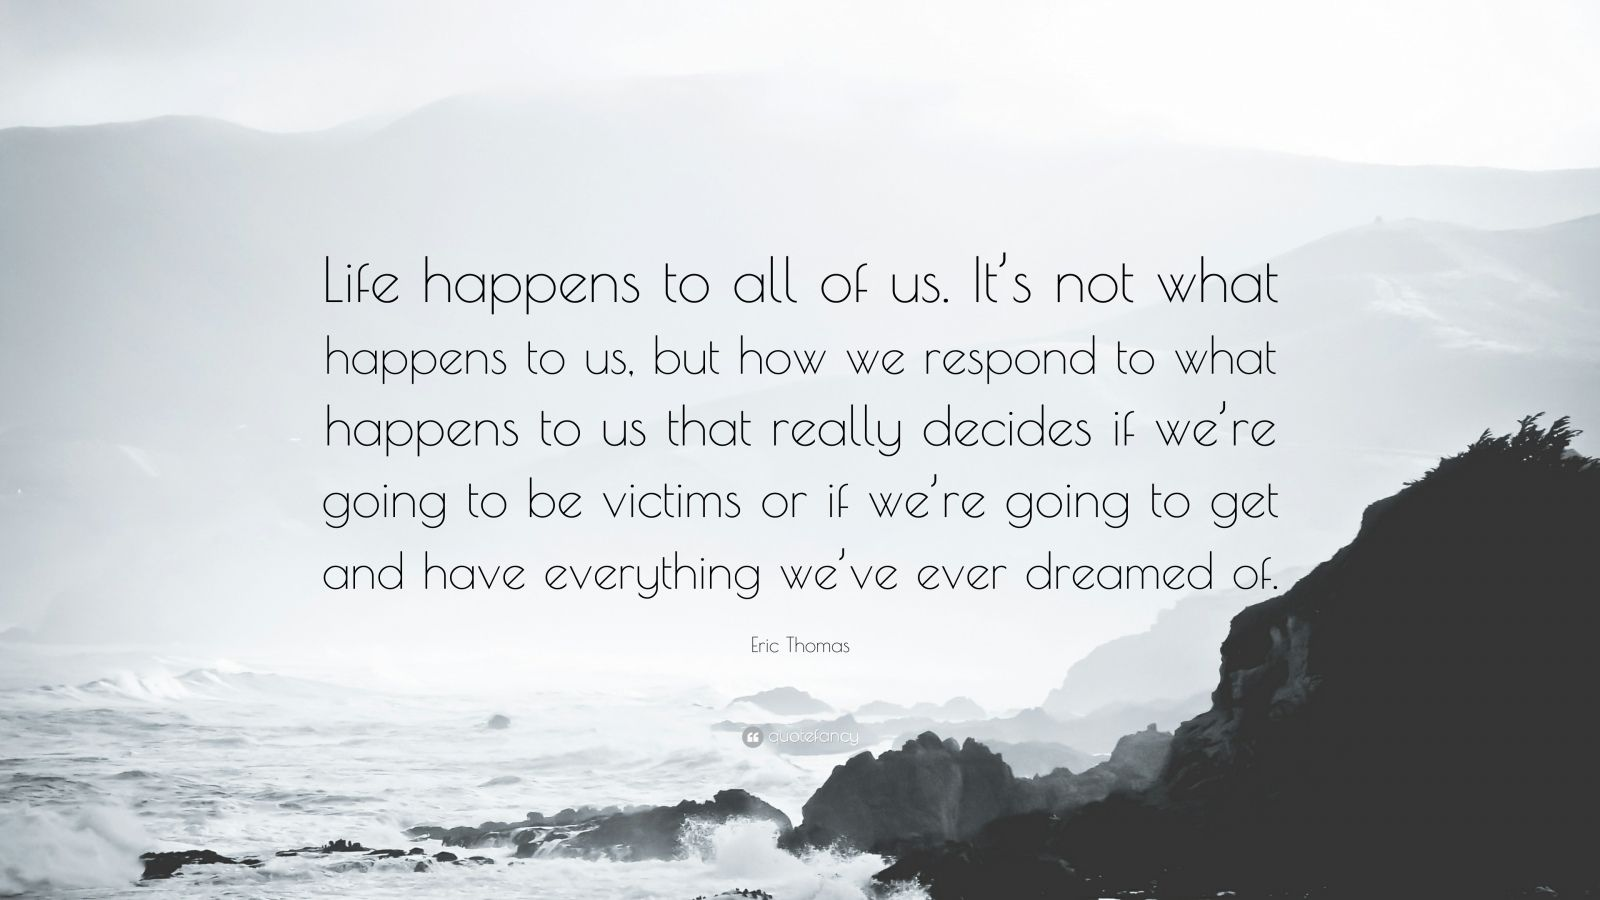 """Eric Thomas Quote: """"Life happens to all of us. It's not what happens to us, but how we respond to what happens to us that really decides if we're going to be victims or if we're going to get and have everything we've ever dreamed of."""""""